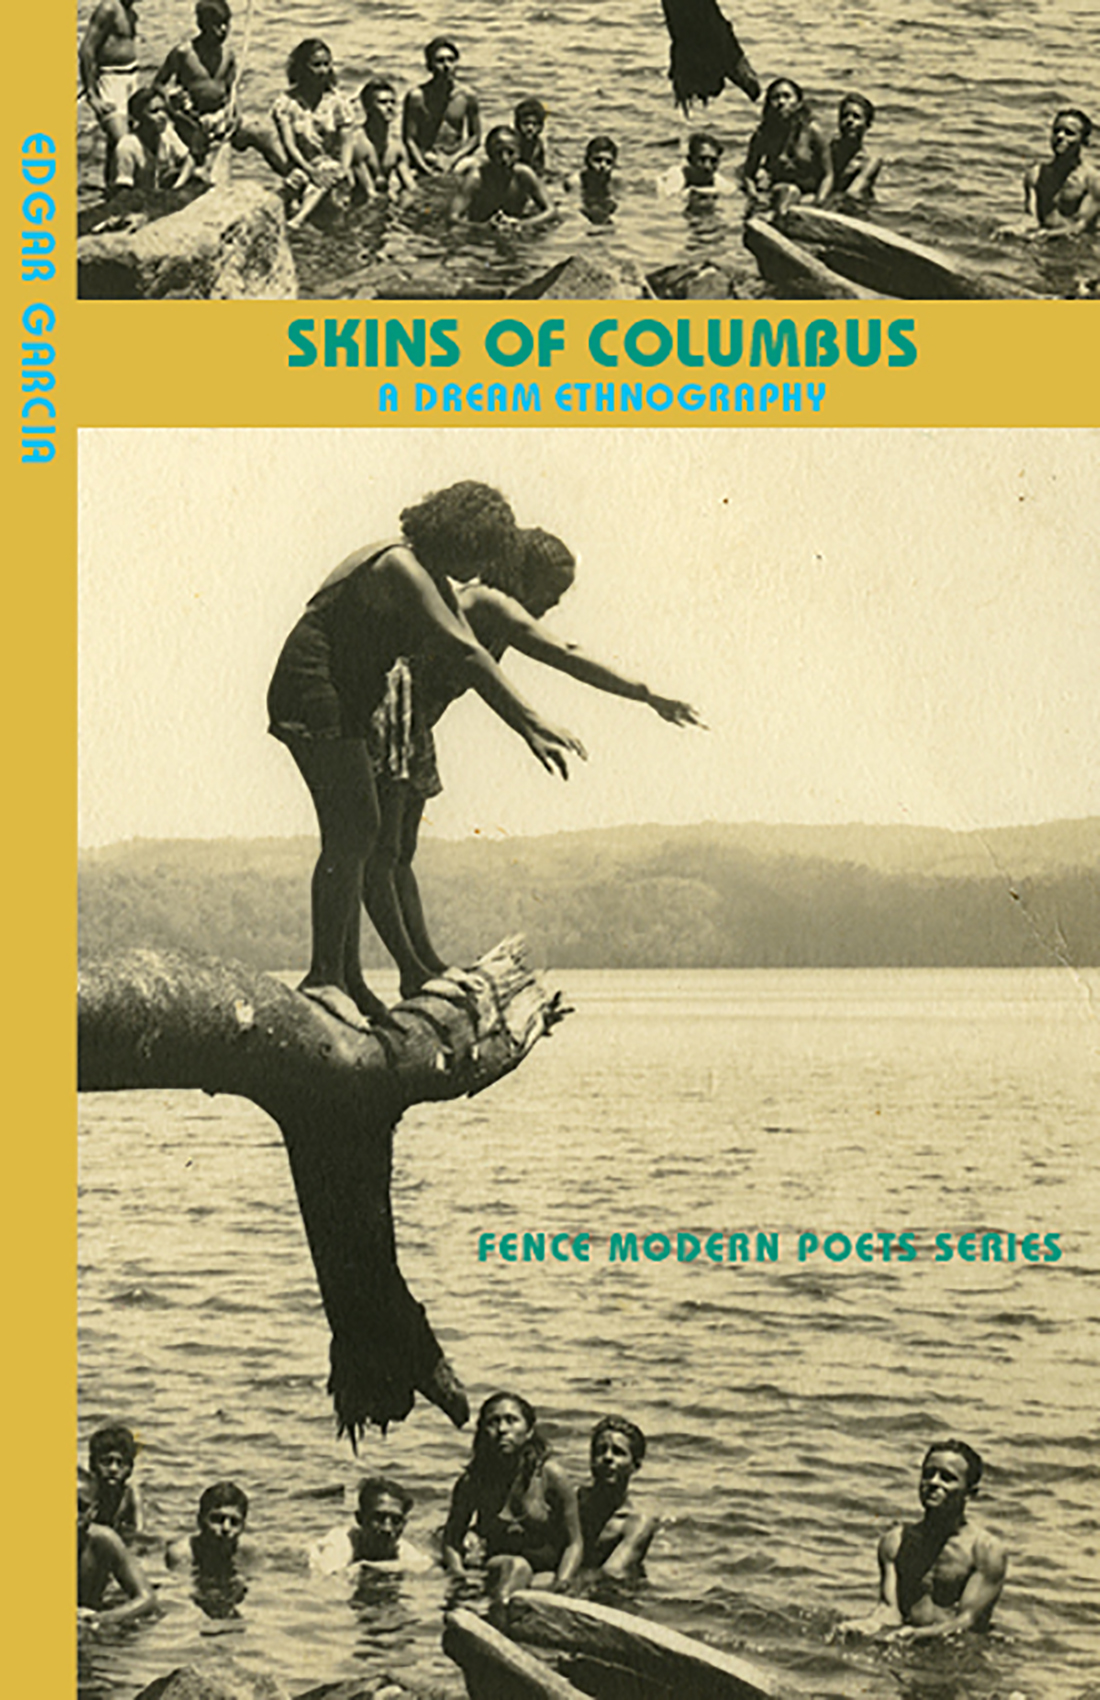 Skins of Columbus: A Dream Ethnography